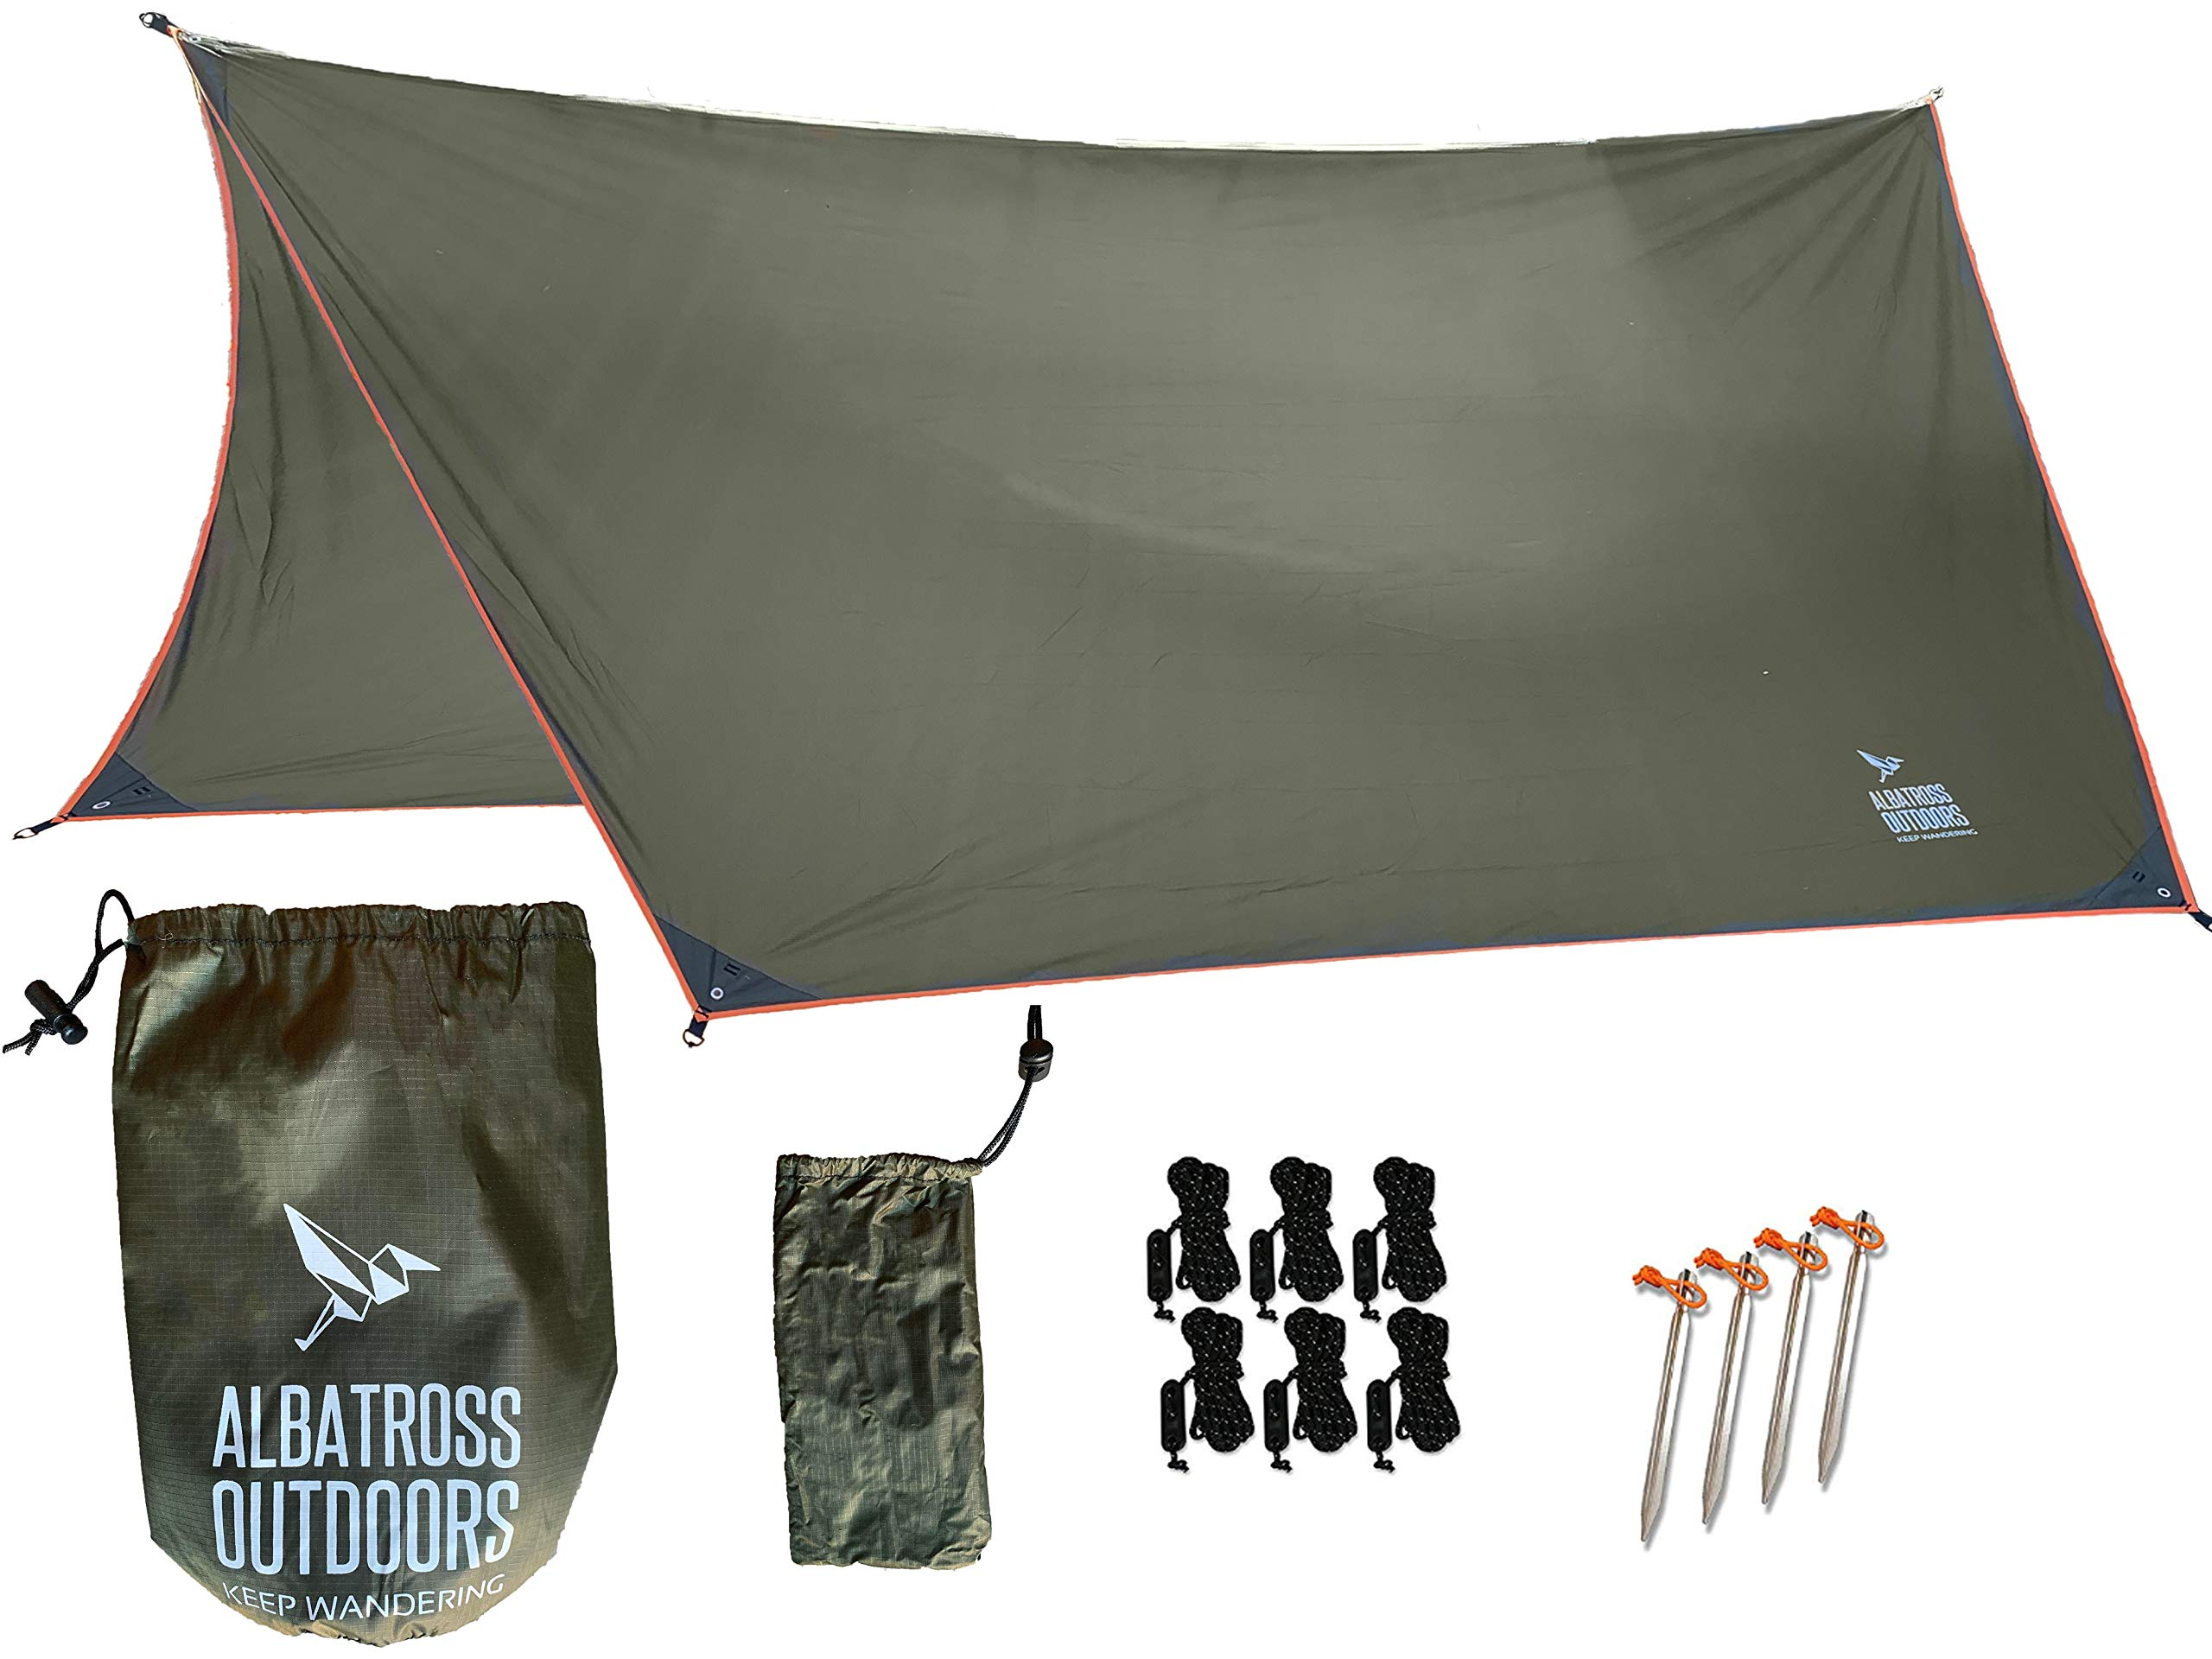 Albatross Outdoors XL 12'x10' Hammock Waterproof Rain Fly - Quality Waterproof Ripstop Nylon Tarp - Highly Versatile Great for Hammocks, Tents, Lean-to - Stakes, Guy Lines, and Stuff Sack Included by Albatross Outdoors